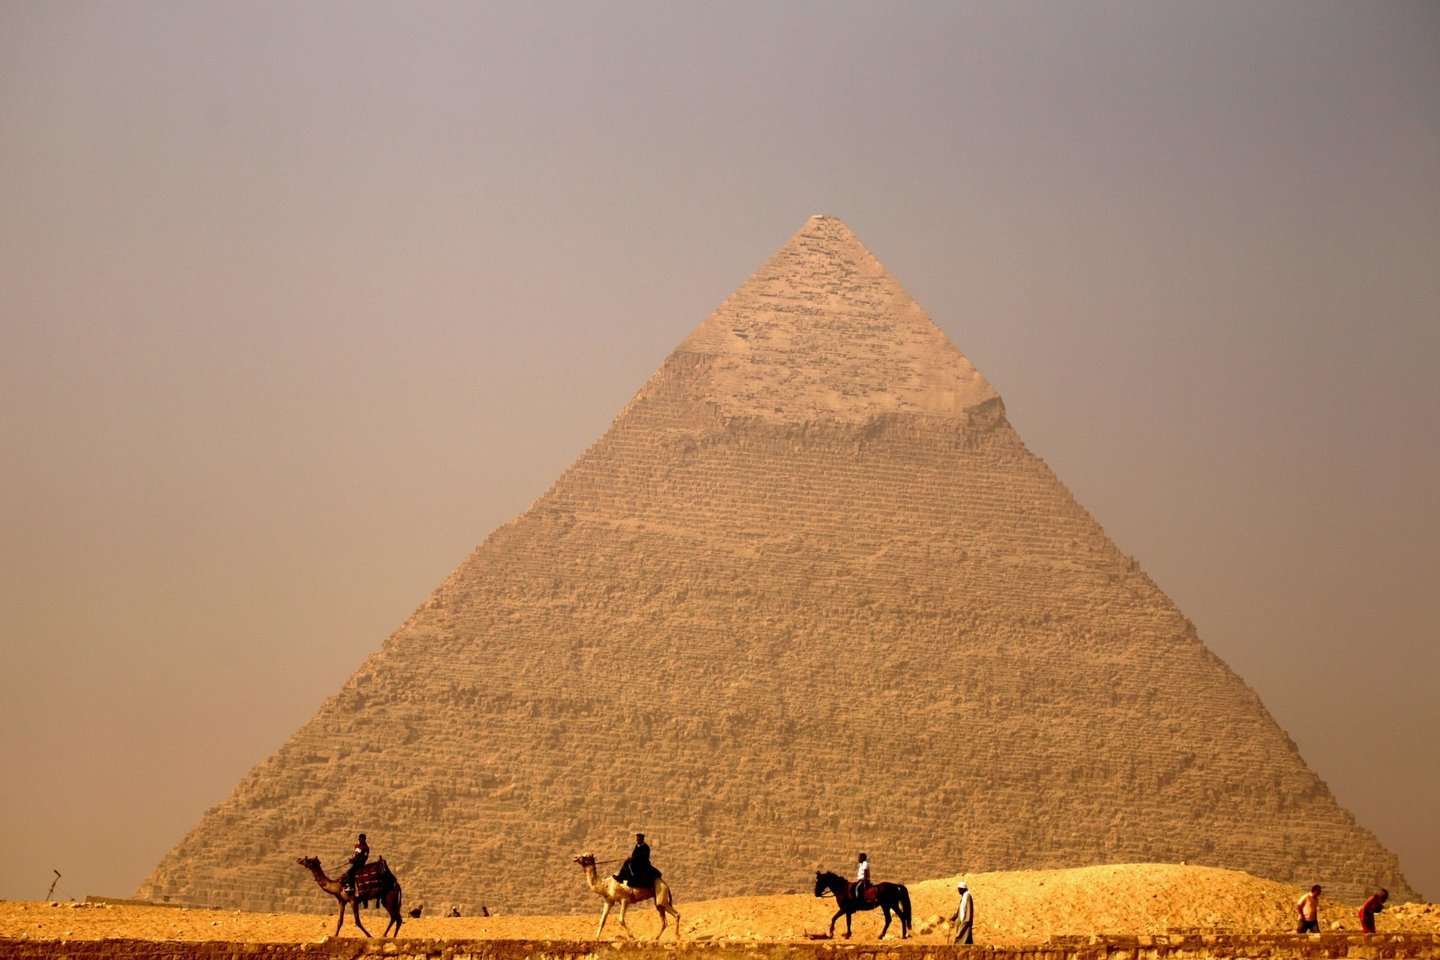 Egyptians ride their camels past the pyramid of Khafre (Chefren) in Giza, on the outskirts of Cairo, on November 30, 2010. AFP PHOTO/PATRICK BAZ (Photo credit should read PATRICK BAZ/AFP/Getty Images)